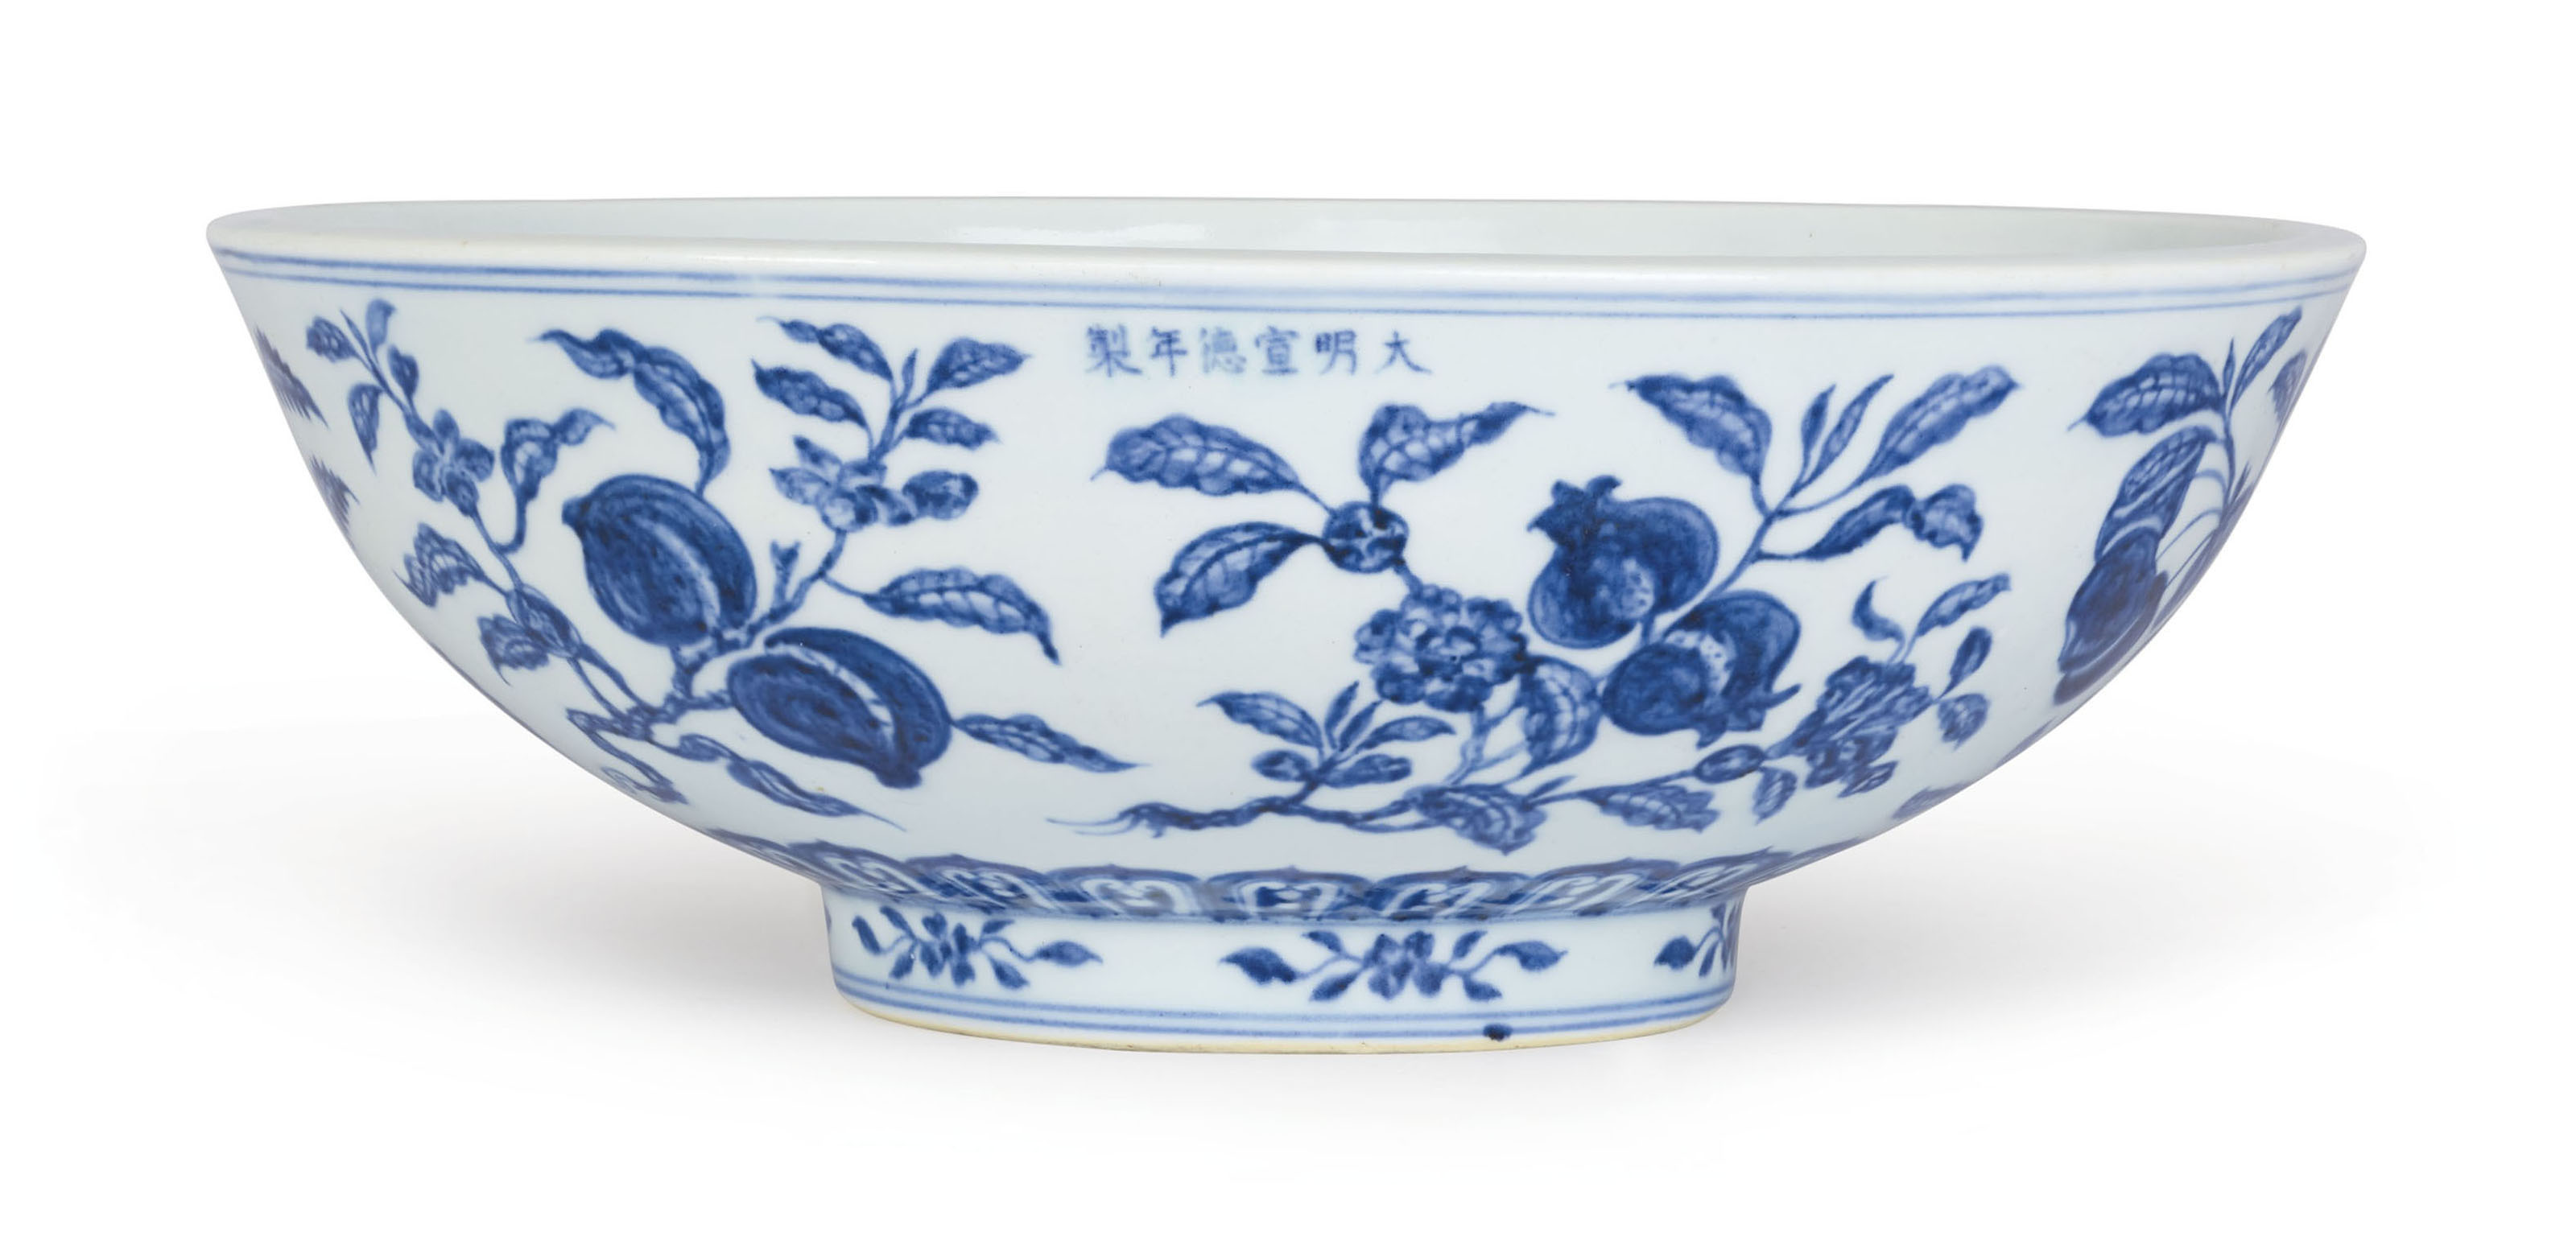 AN EXTREMELY RARE AND FINE LARGE BLUE AND WHITE 'FRUIT SPRAY' BOWL